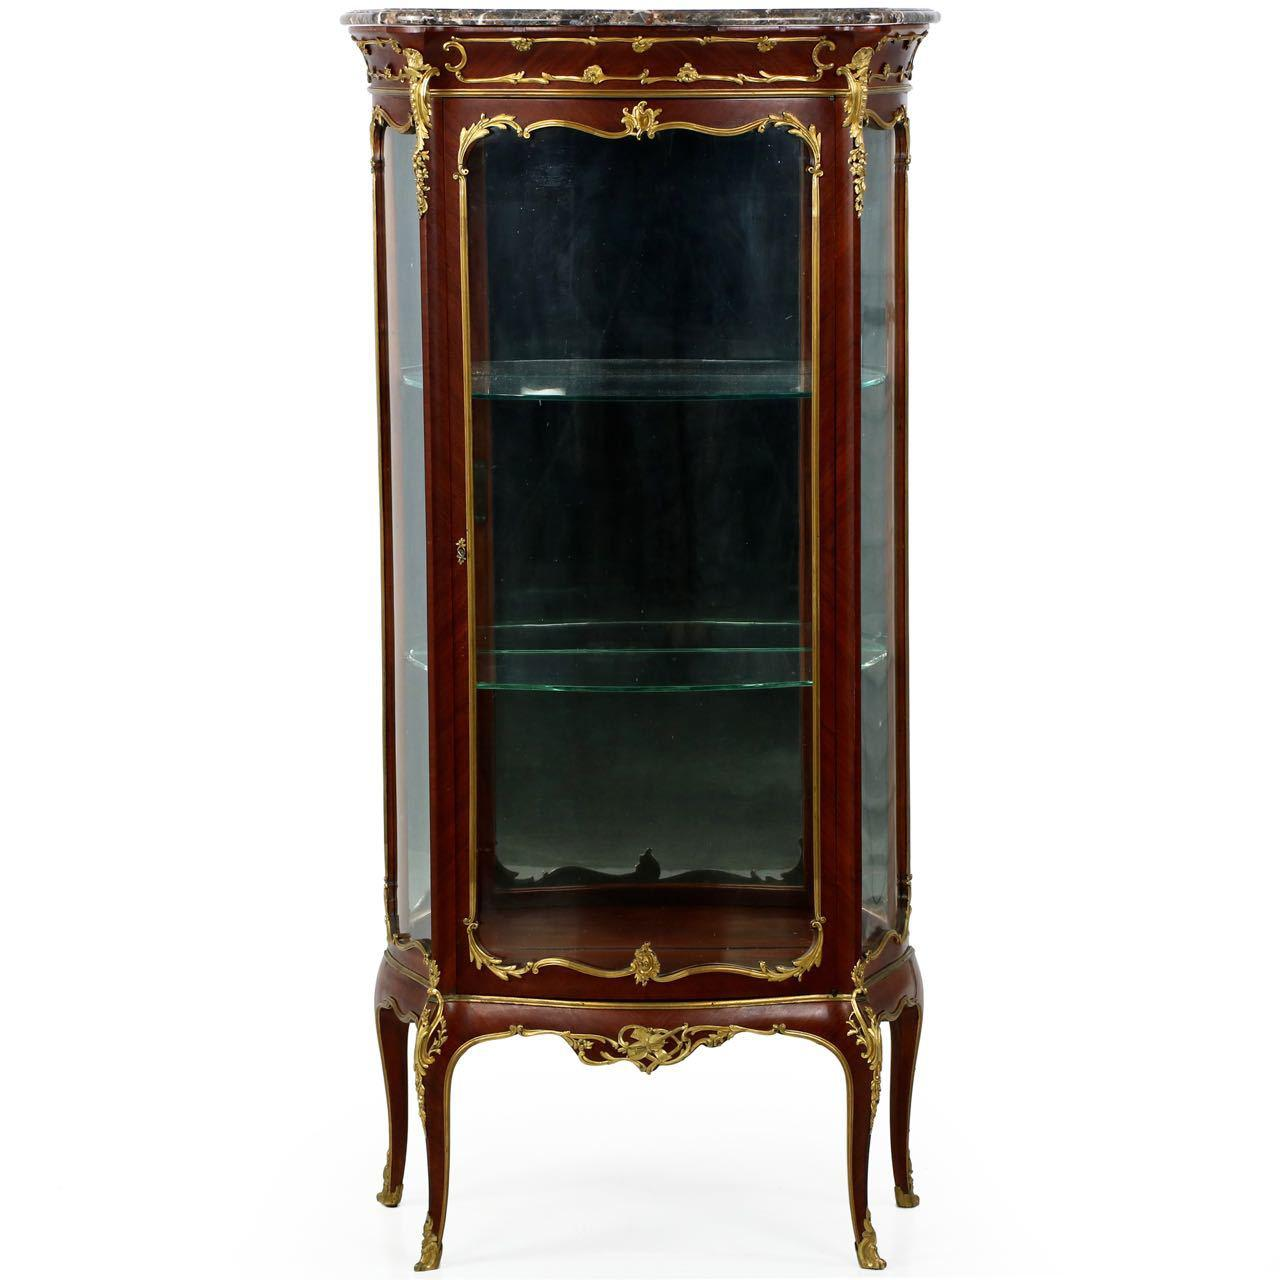 A Work Of Simply Outstanding Quality And Craftsmanship, This Gorgeous  Vitrine Is Of The Belle